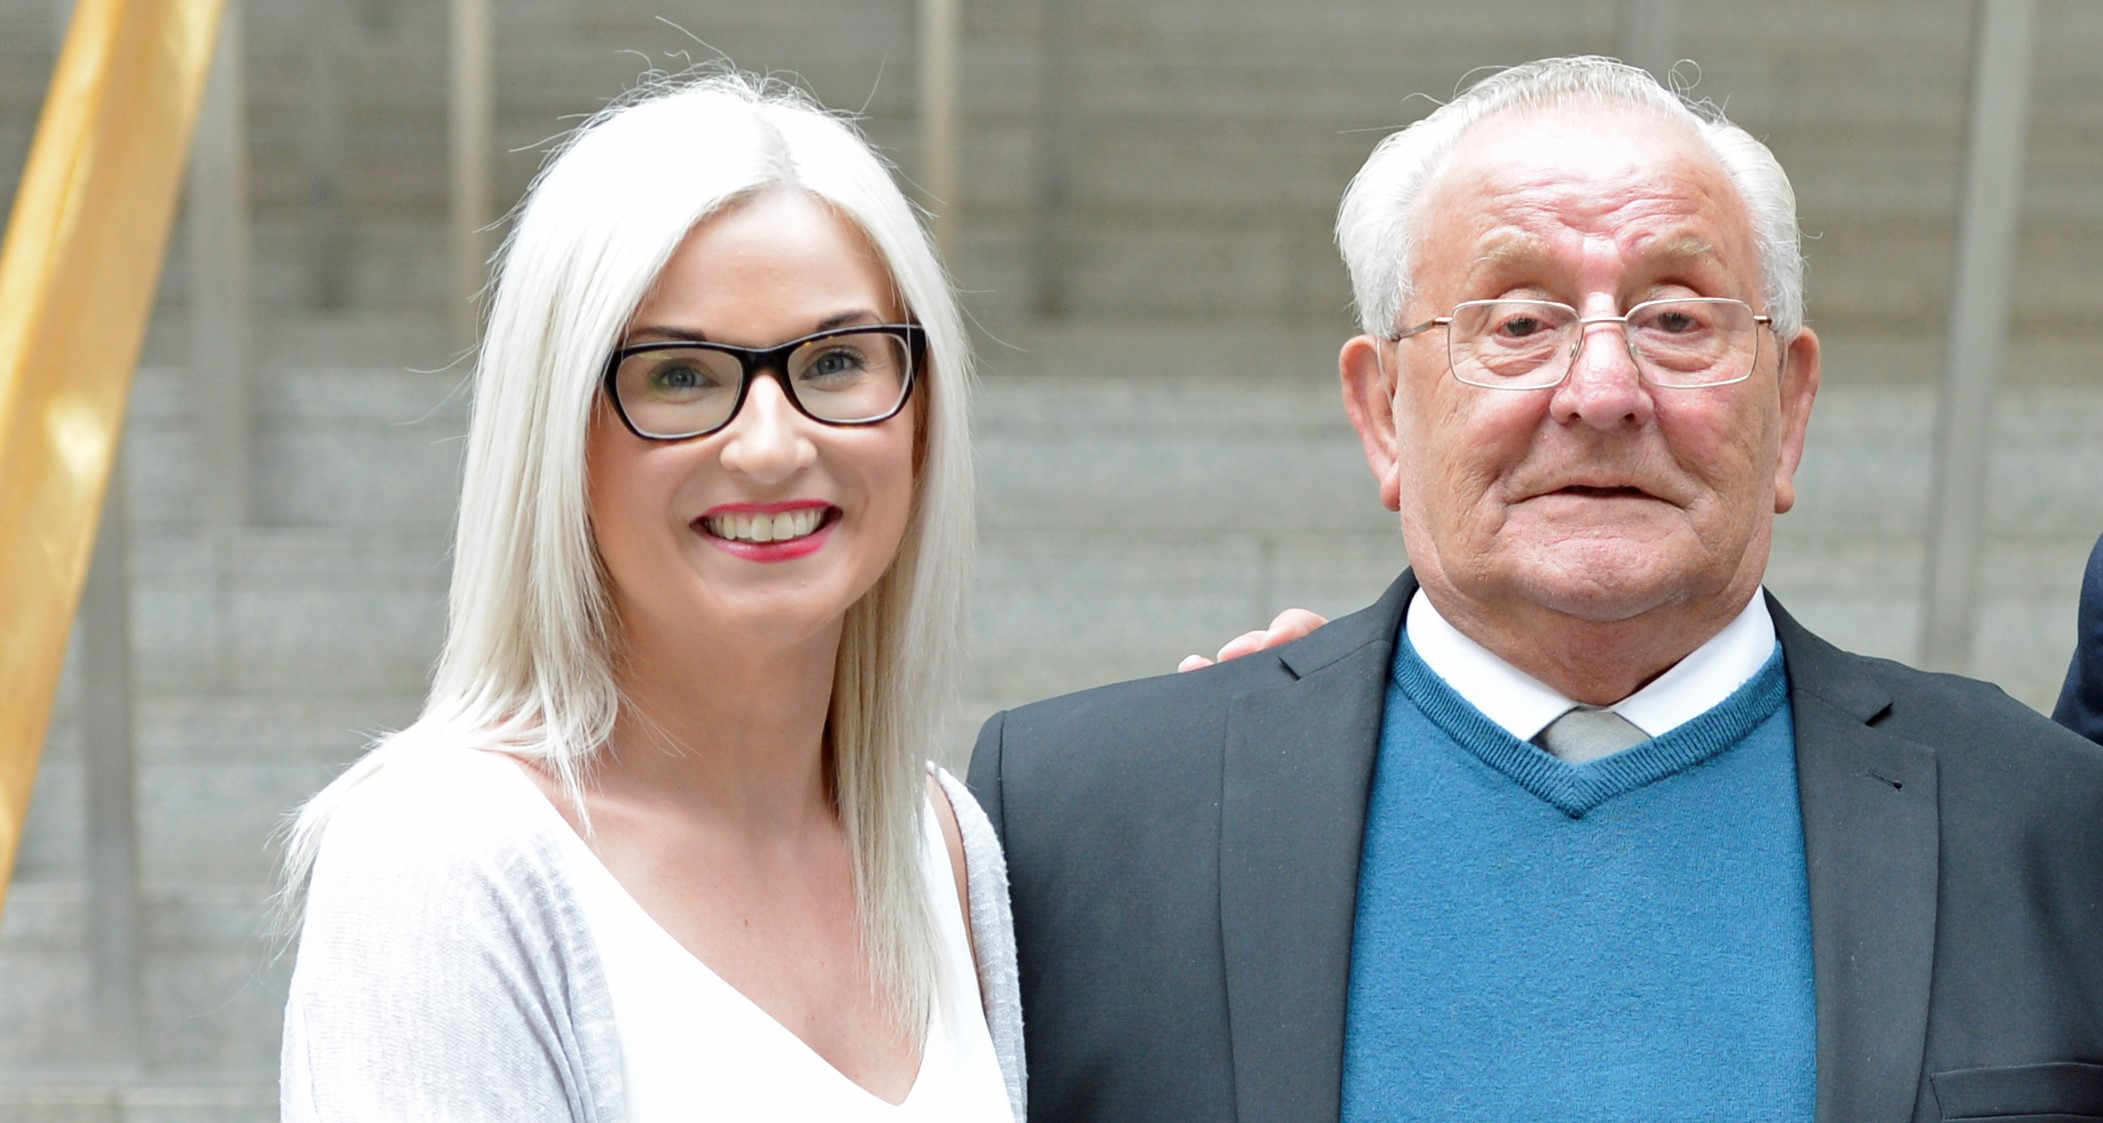 Mental health campaigner Gillian Murray with her uncle's father David Ramsay Snr.